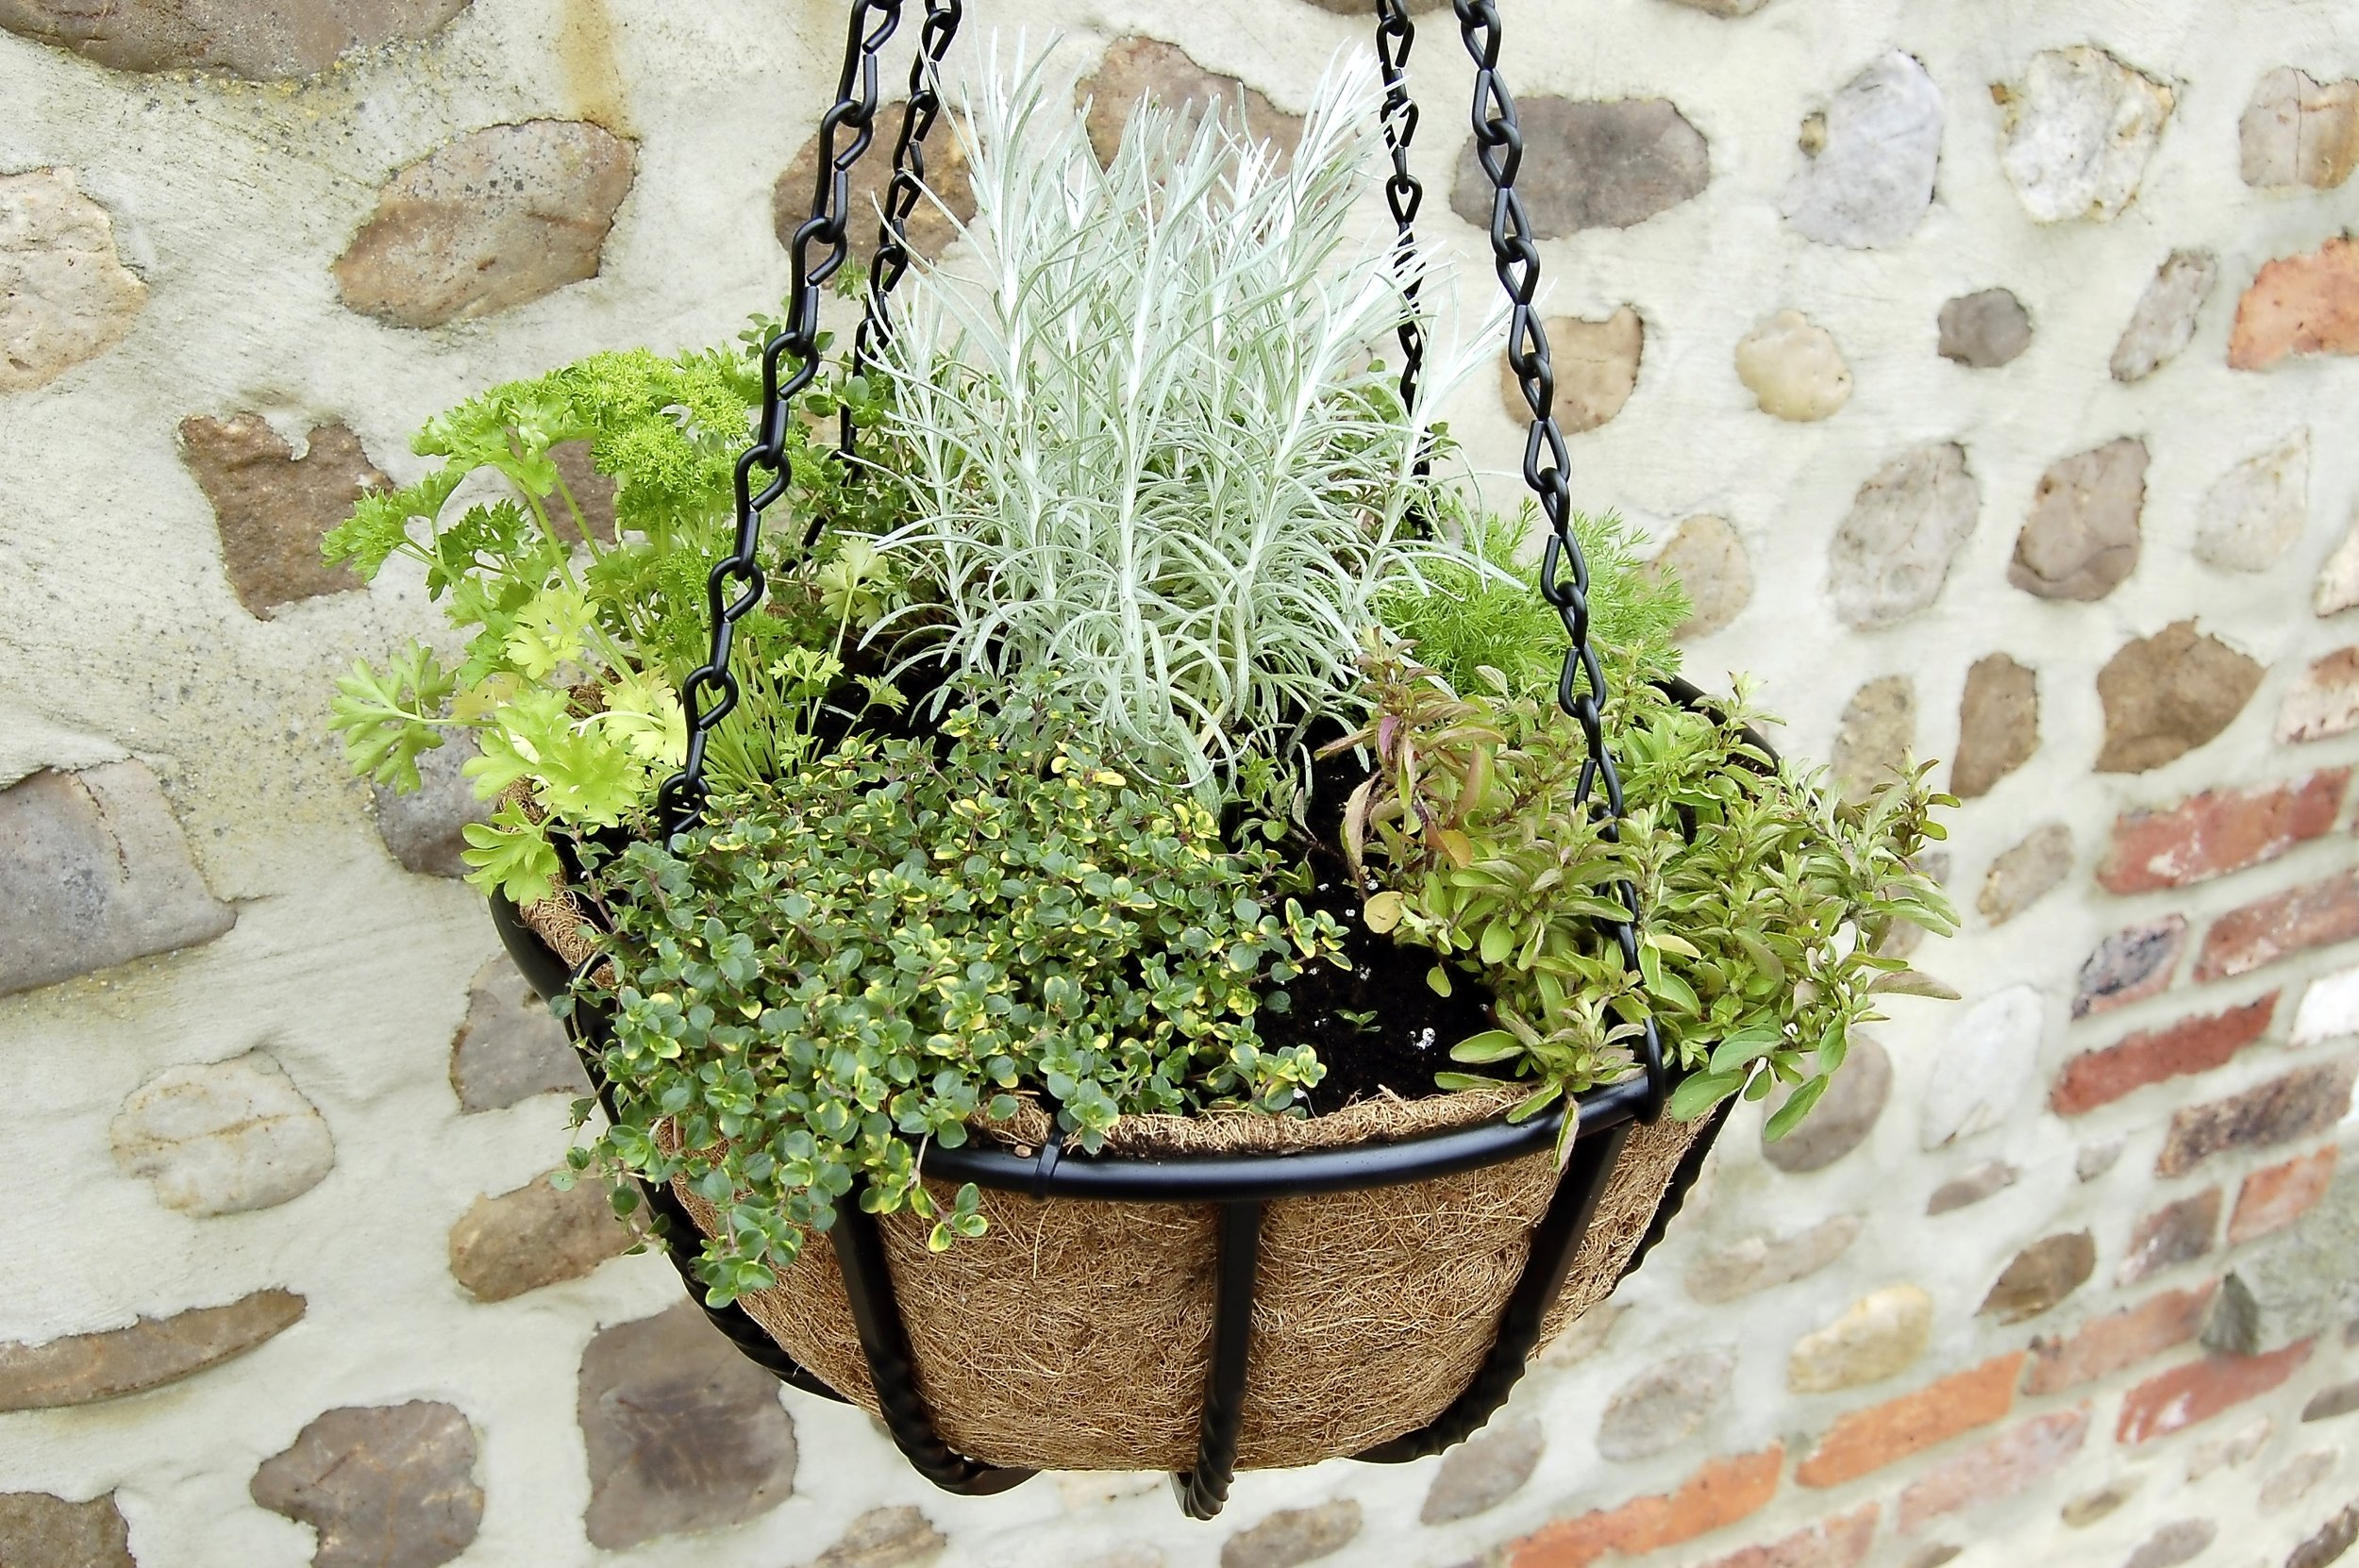 2. Small herbs are ideal planted in hanging baskets and hung on a sheltered, sunny wall